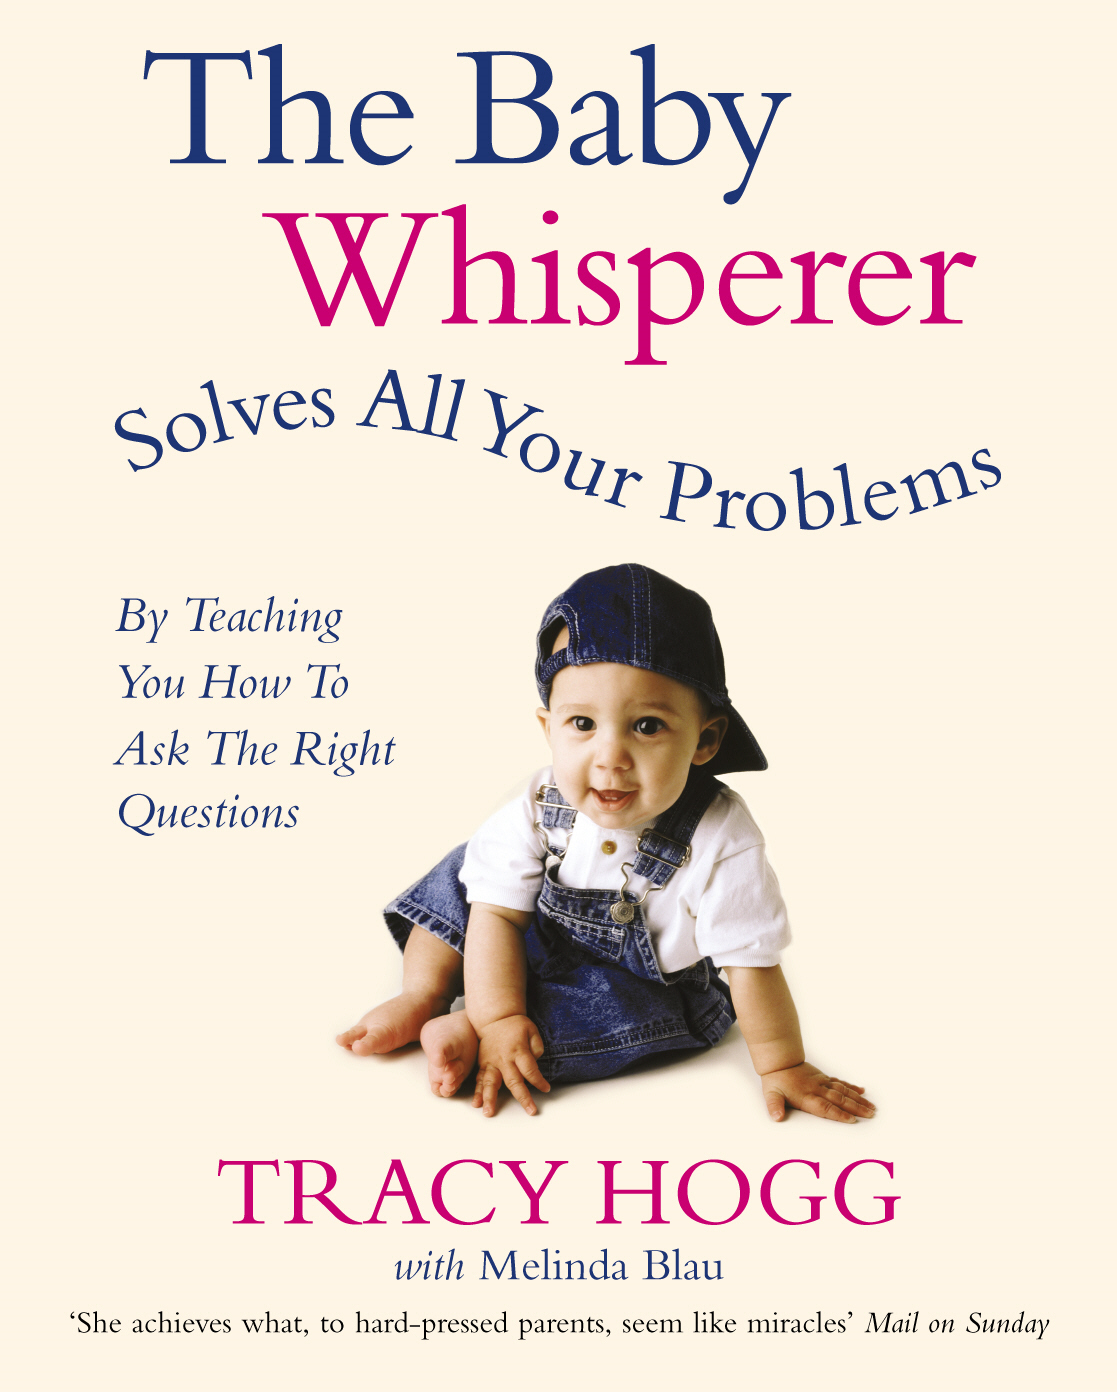 The Baby Whisperer Solves All Your Problems By teaching you have to ask the right questions